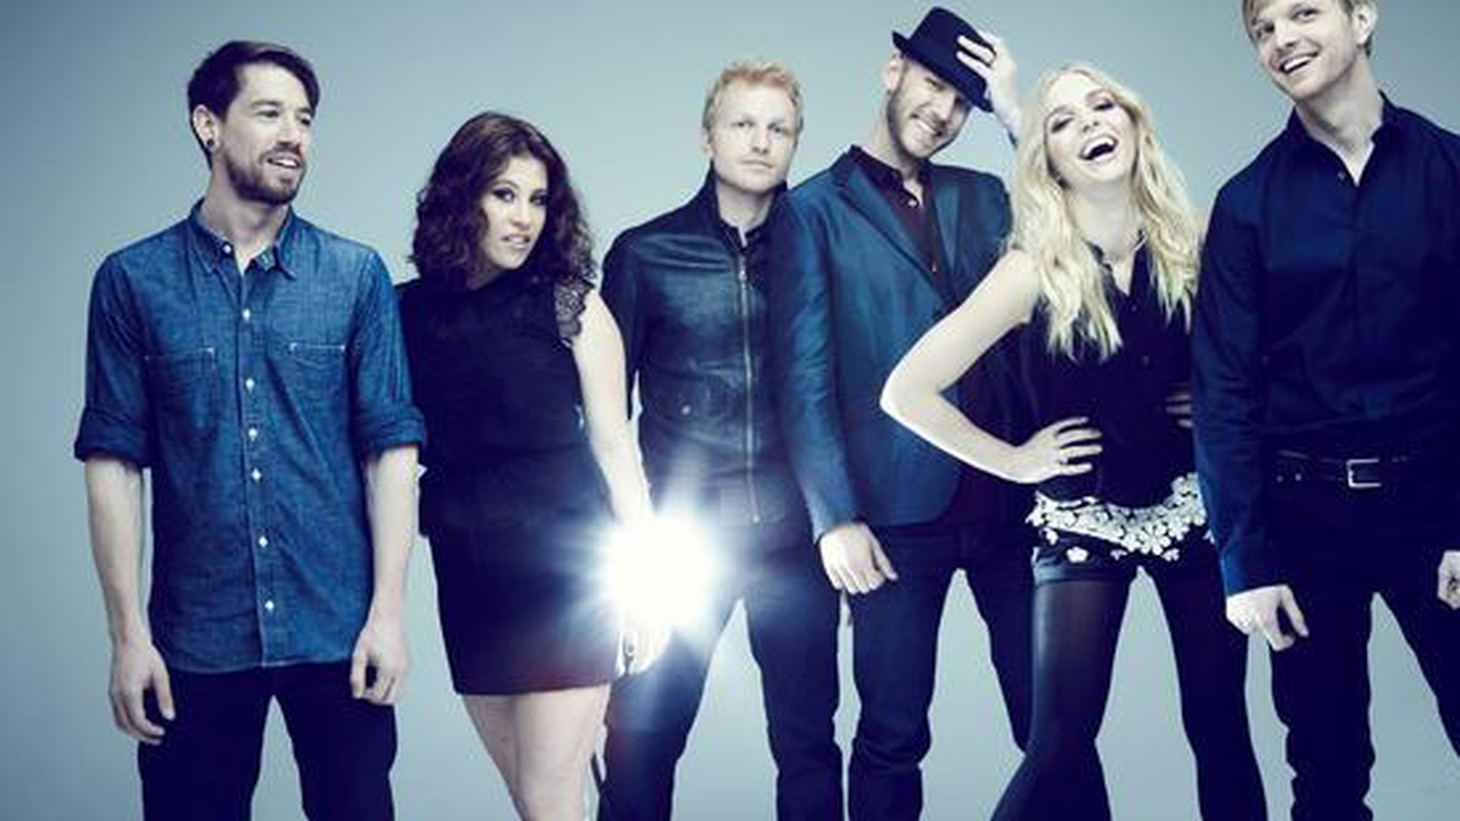 The gospel-stomp sound and impeccable harmonies of Delta Rae totally grabs your attention.